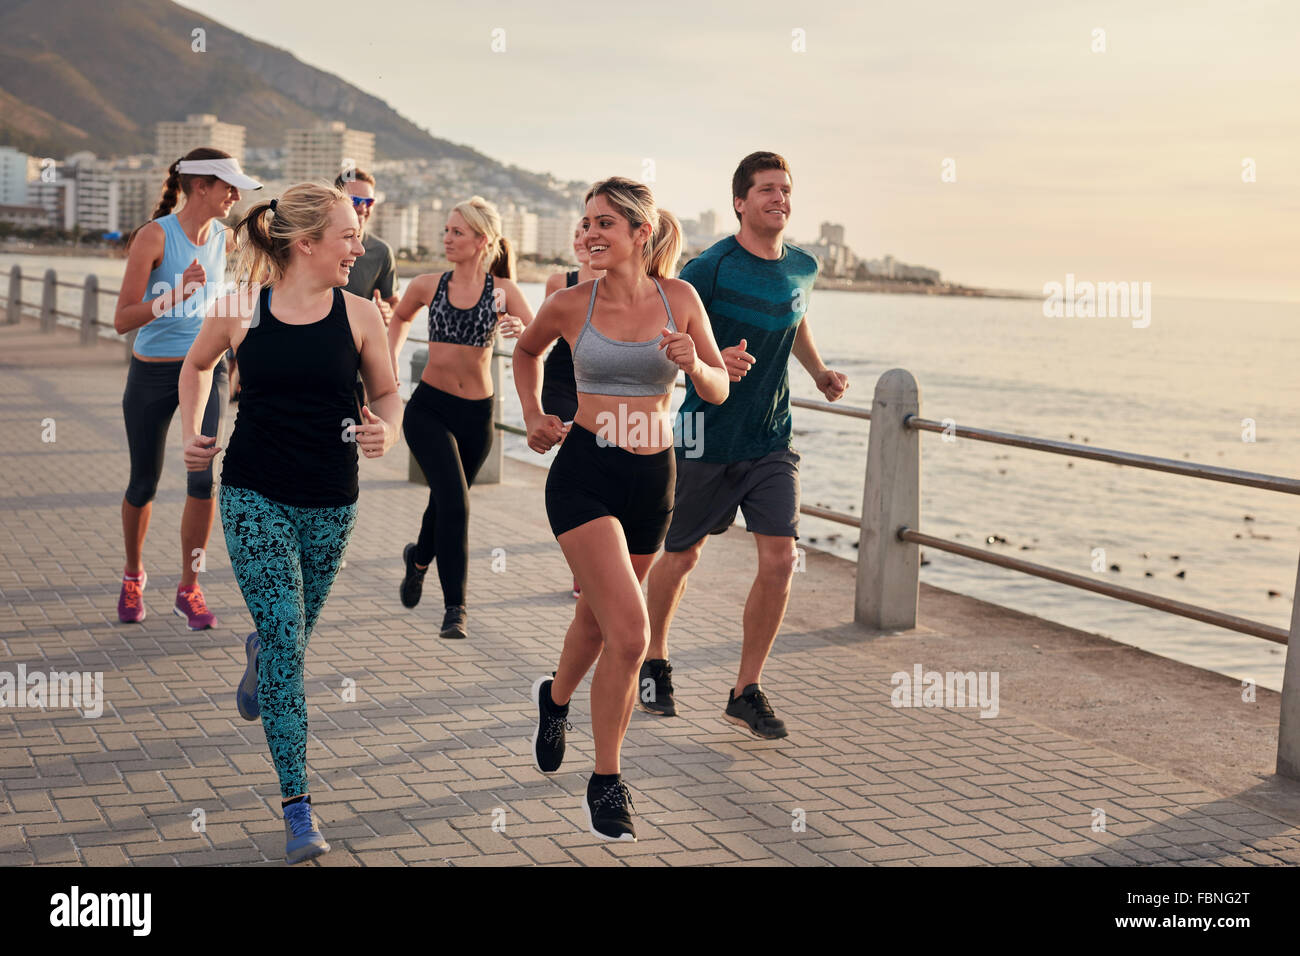 Portrait of young runners enjoying workout on the sea front path along the shoreline.  Running club group running - Stock Image